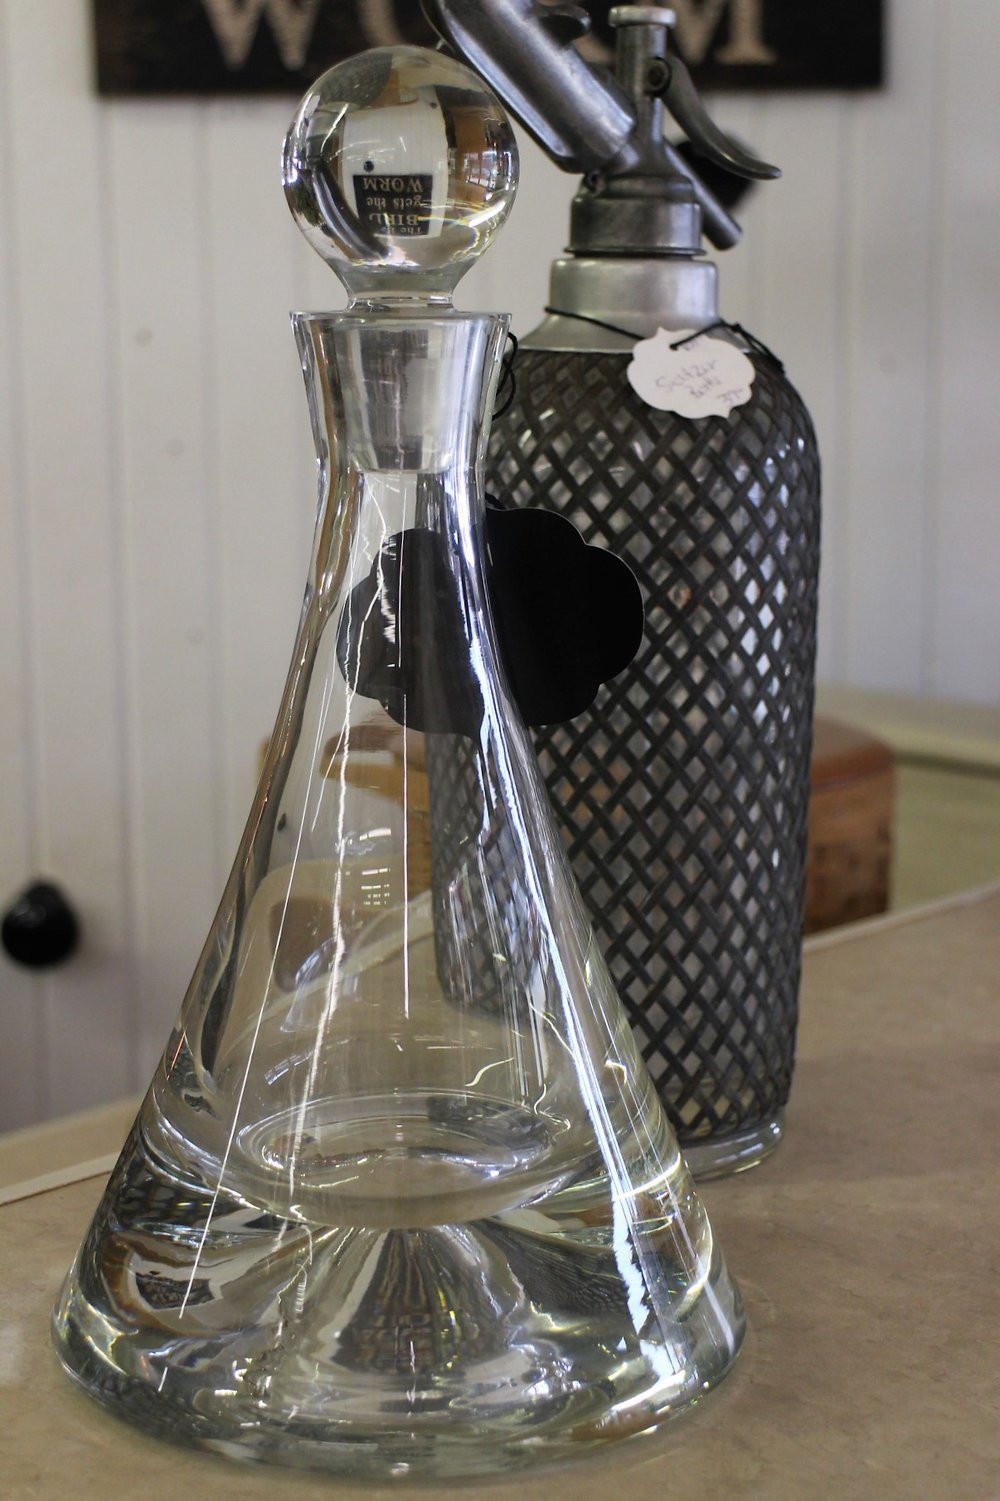 Best ideas about Stock The Bar Gift Ideas . Save or Pin STOCK THE BAR GIFT IDEAS — Living ncw Now.